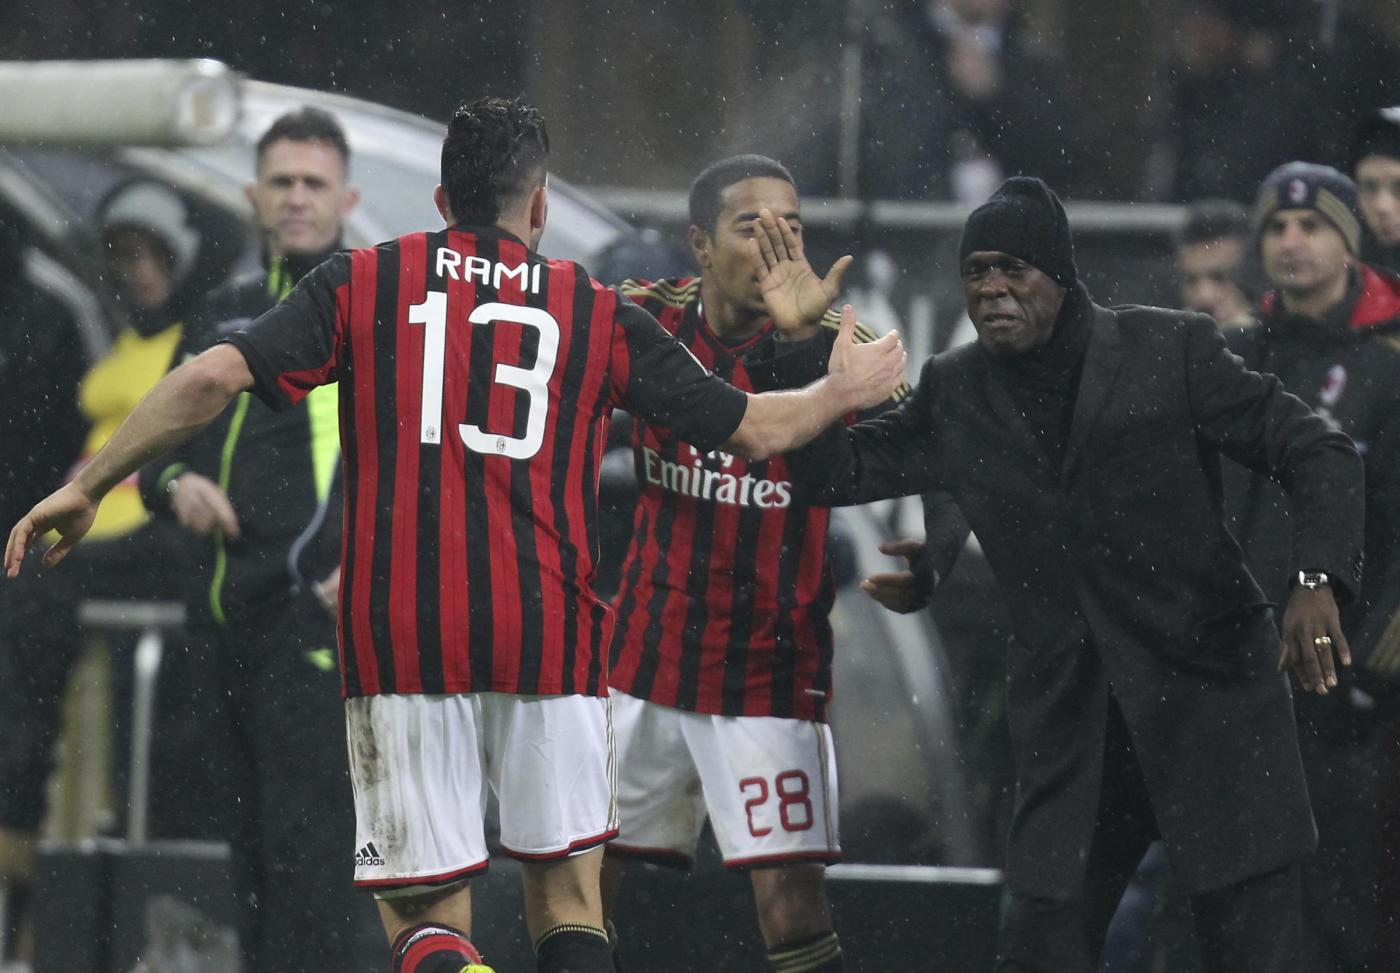 milan-bologna-streaming (5)